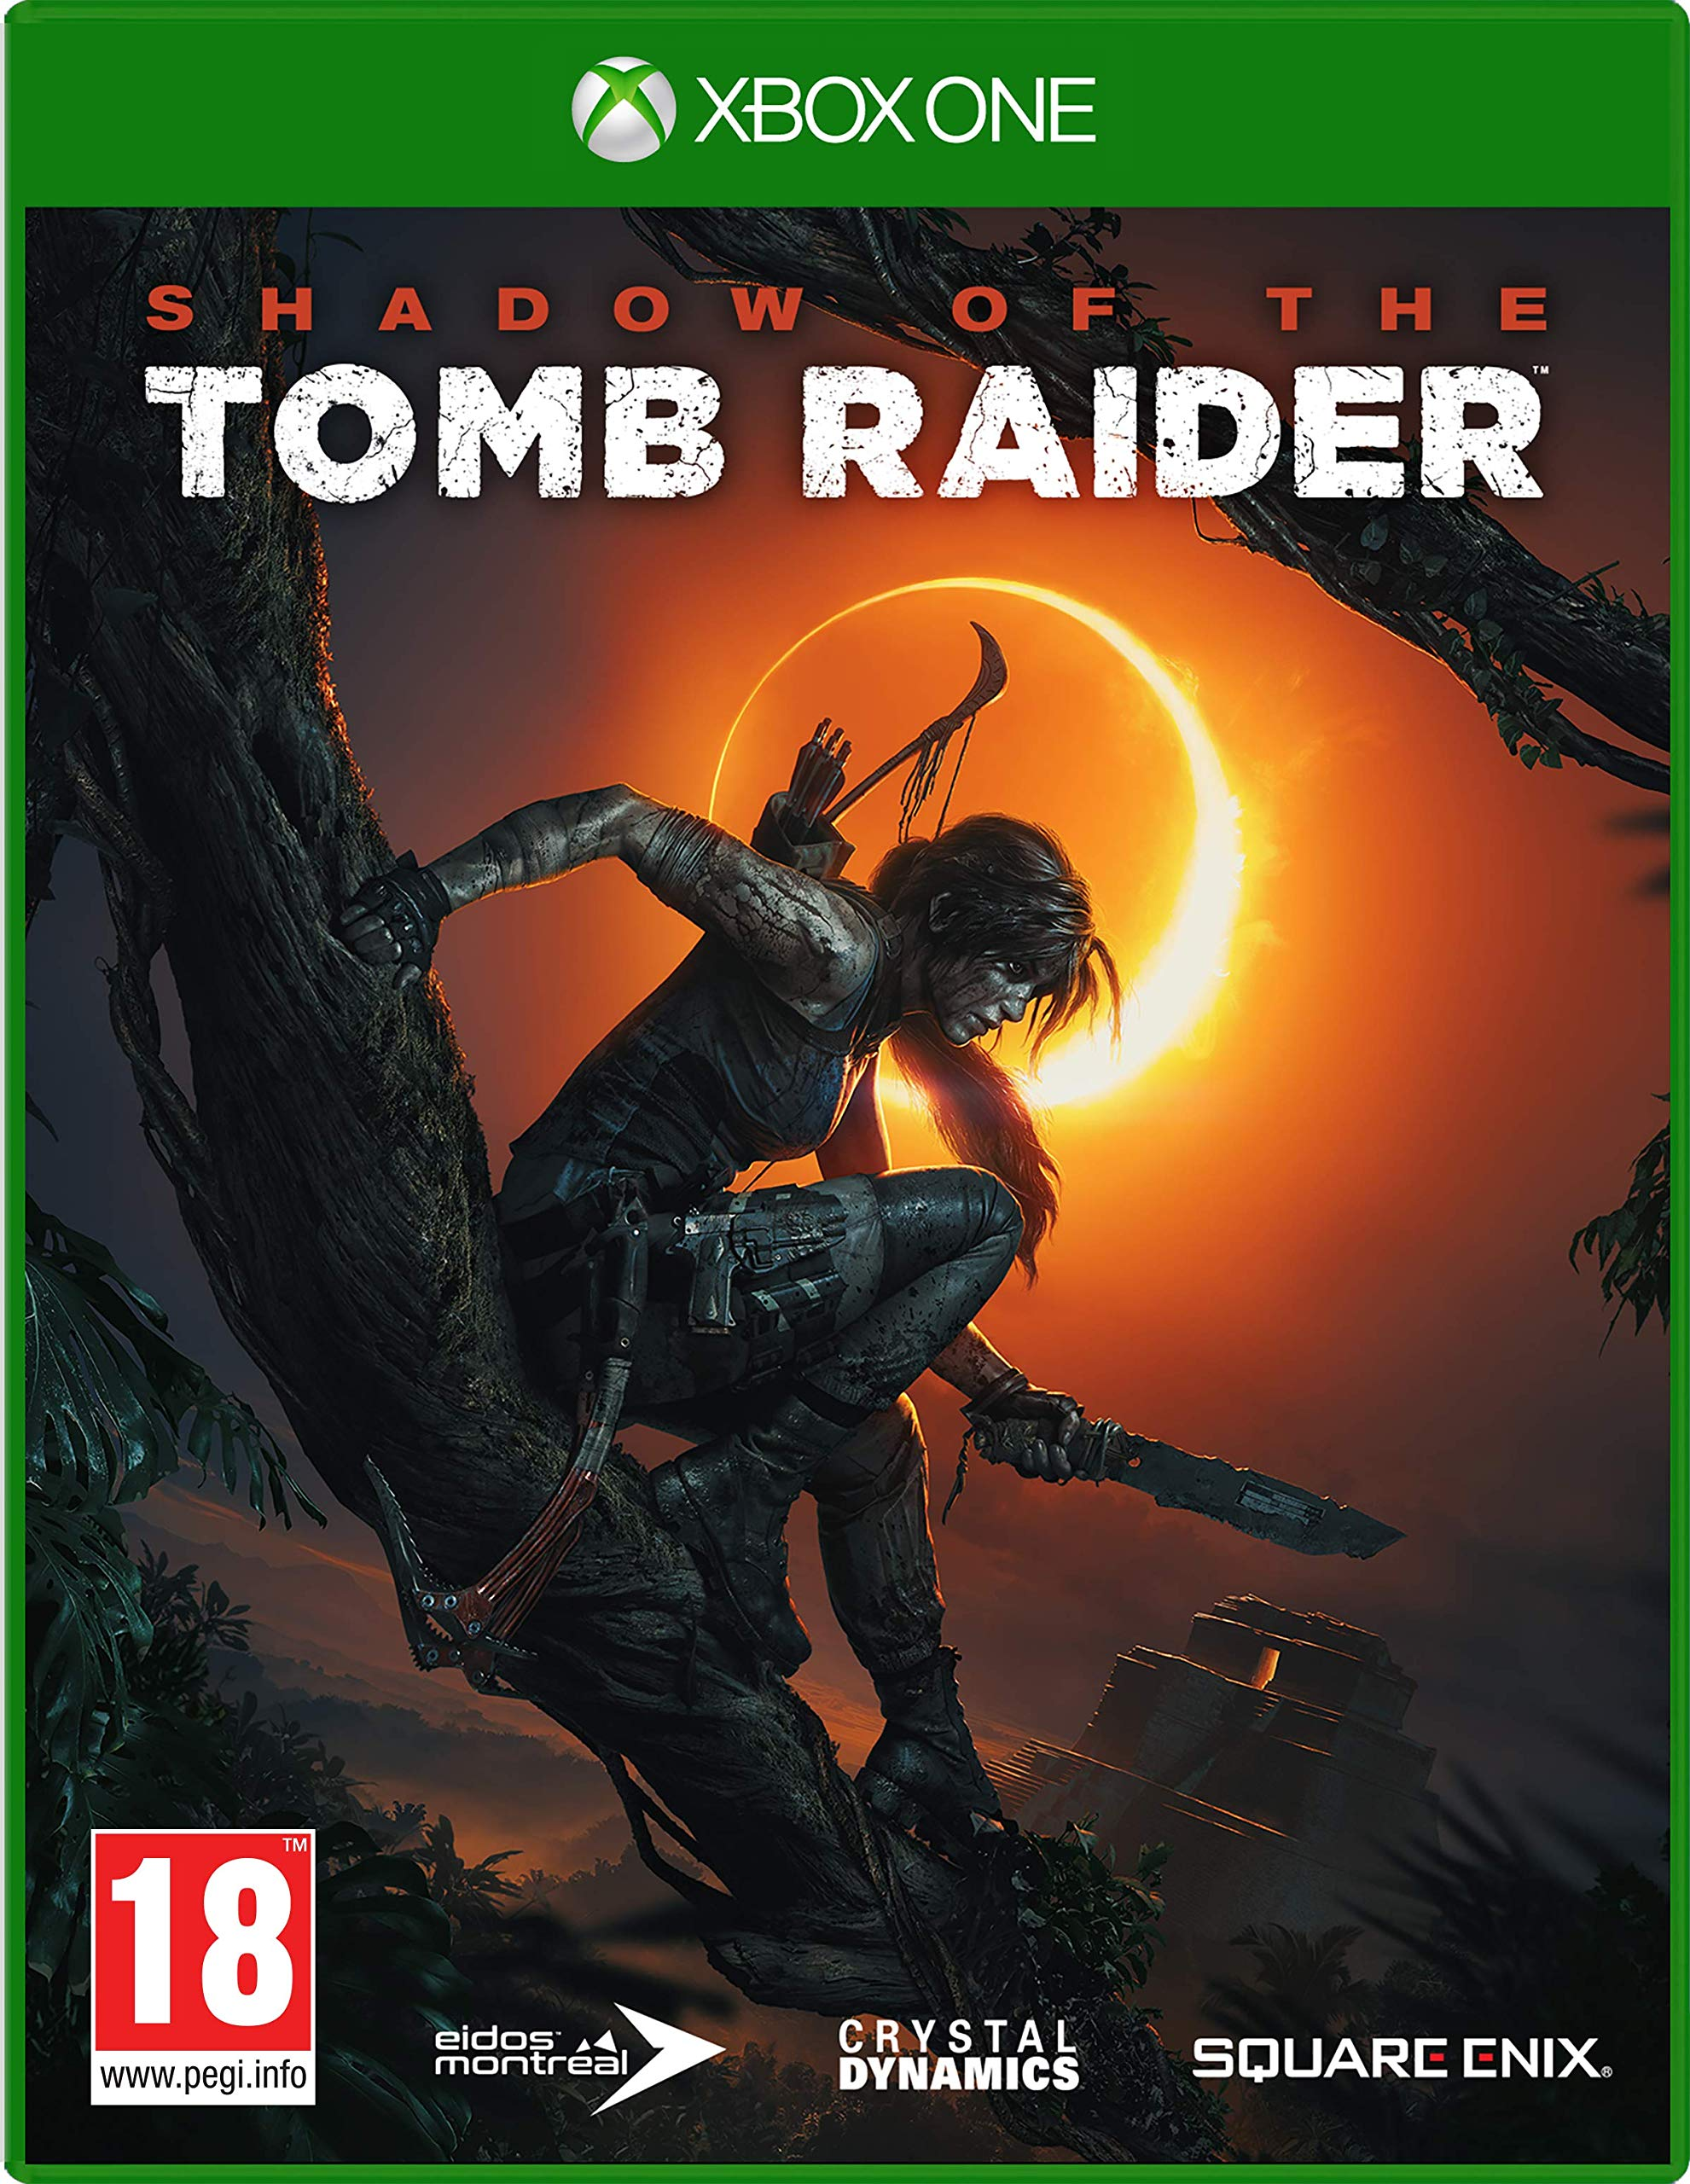 Shadow of the Tomb Raider (Xbox One) product image